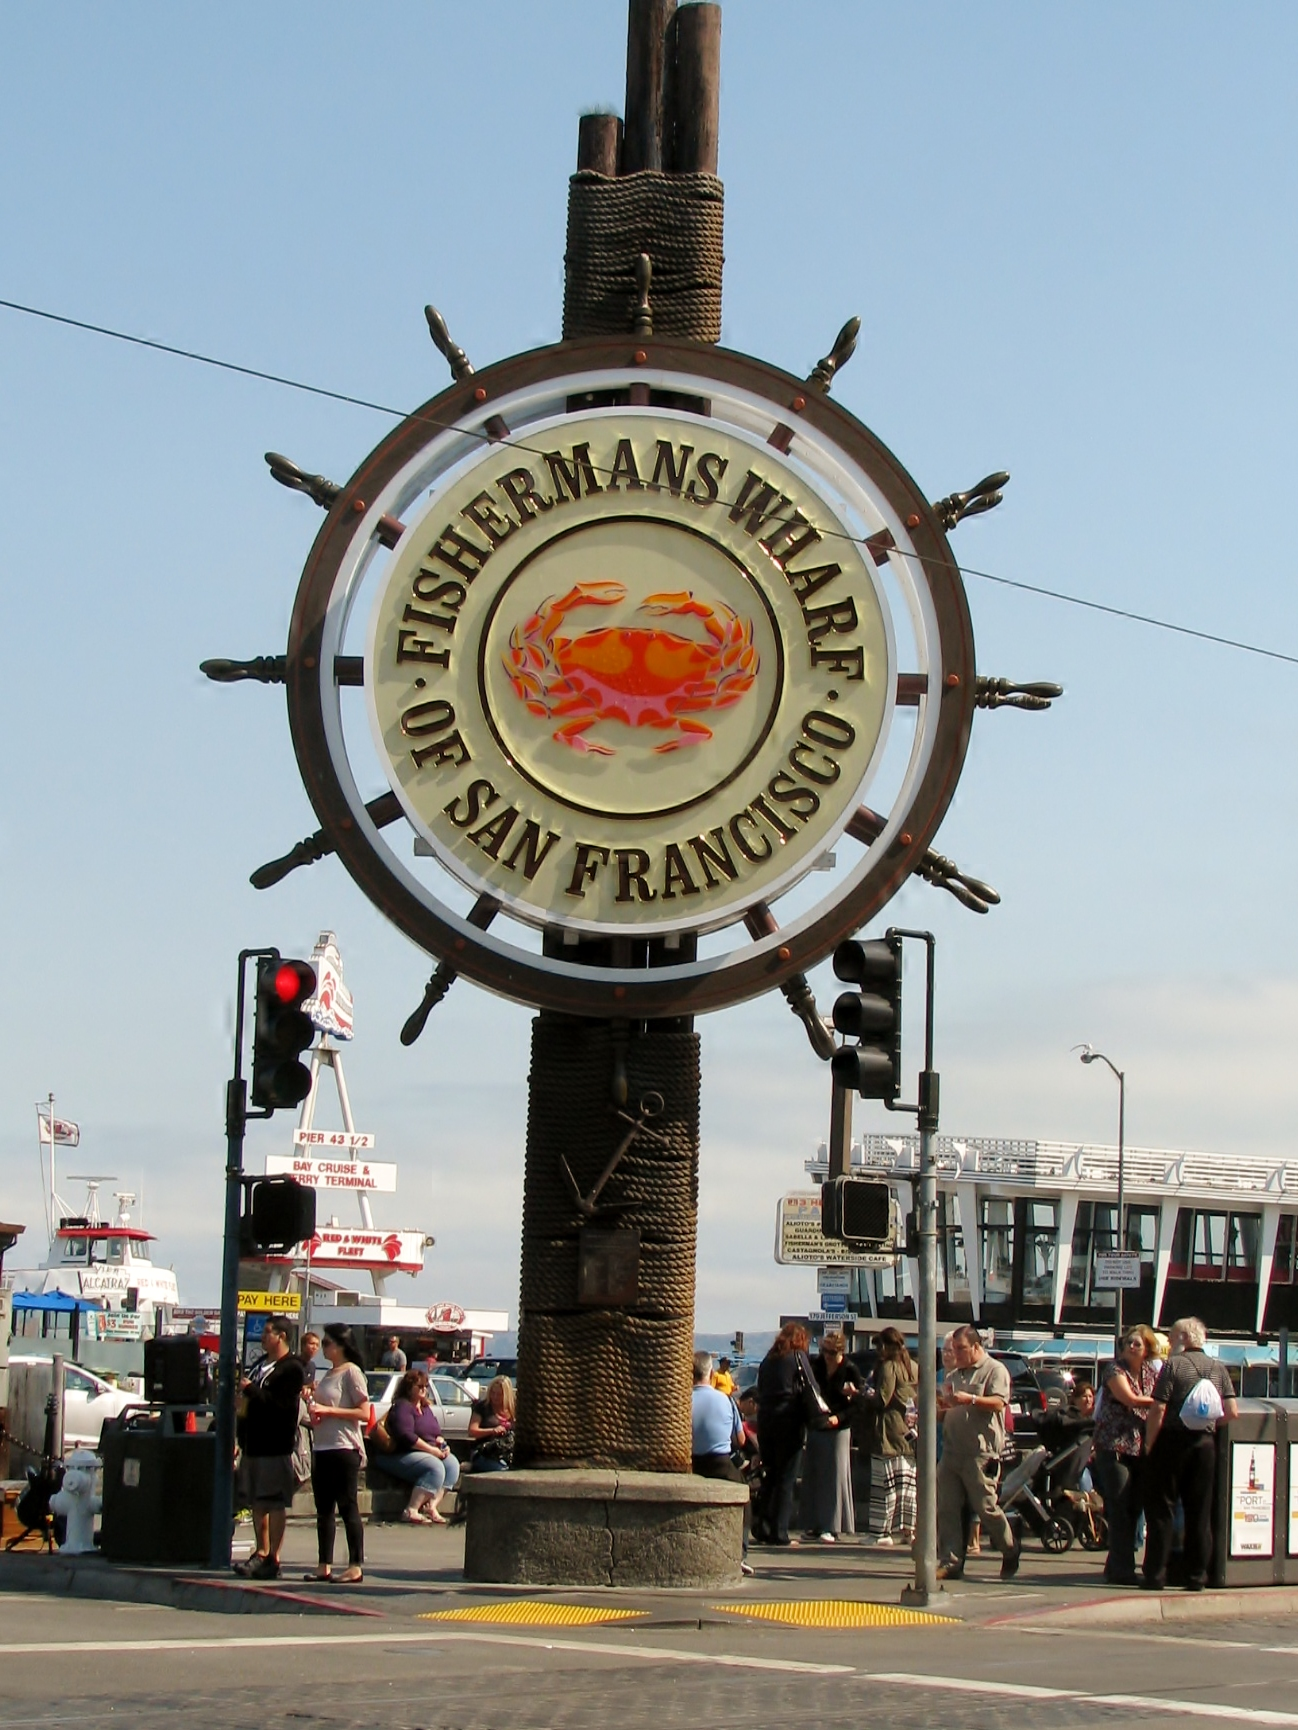 Best Crab San Francisco Fishermans Wharf